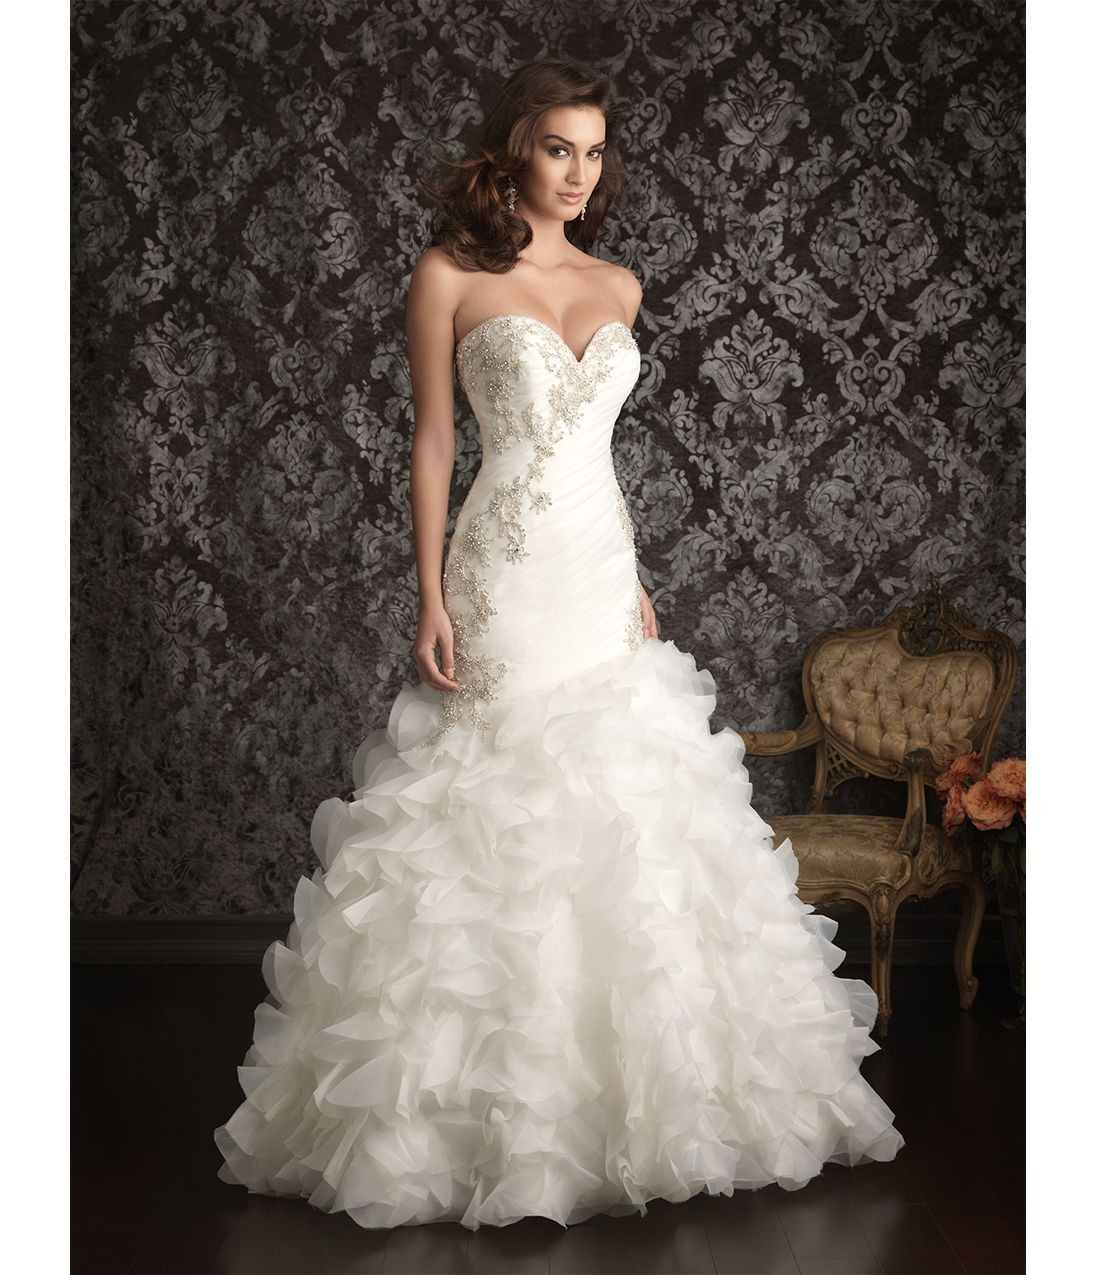 2013 Allure Bridal - White Organza Swarvoski Crystal Wedding Dress ...